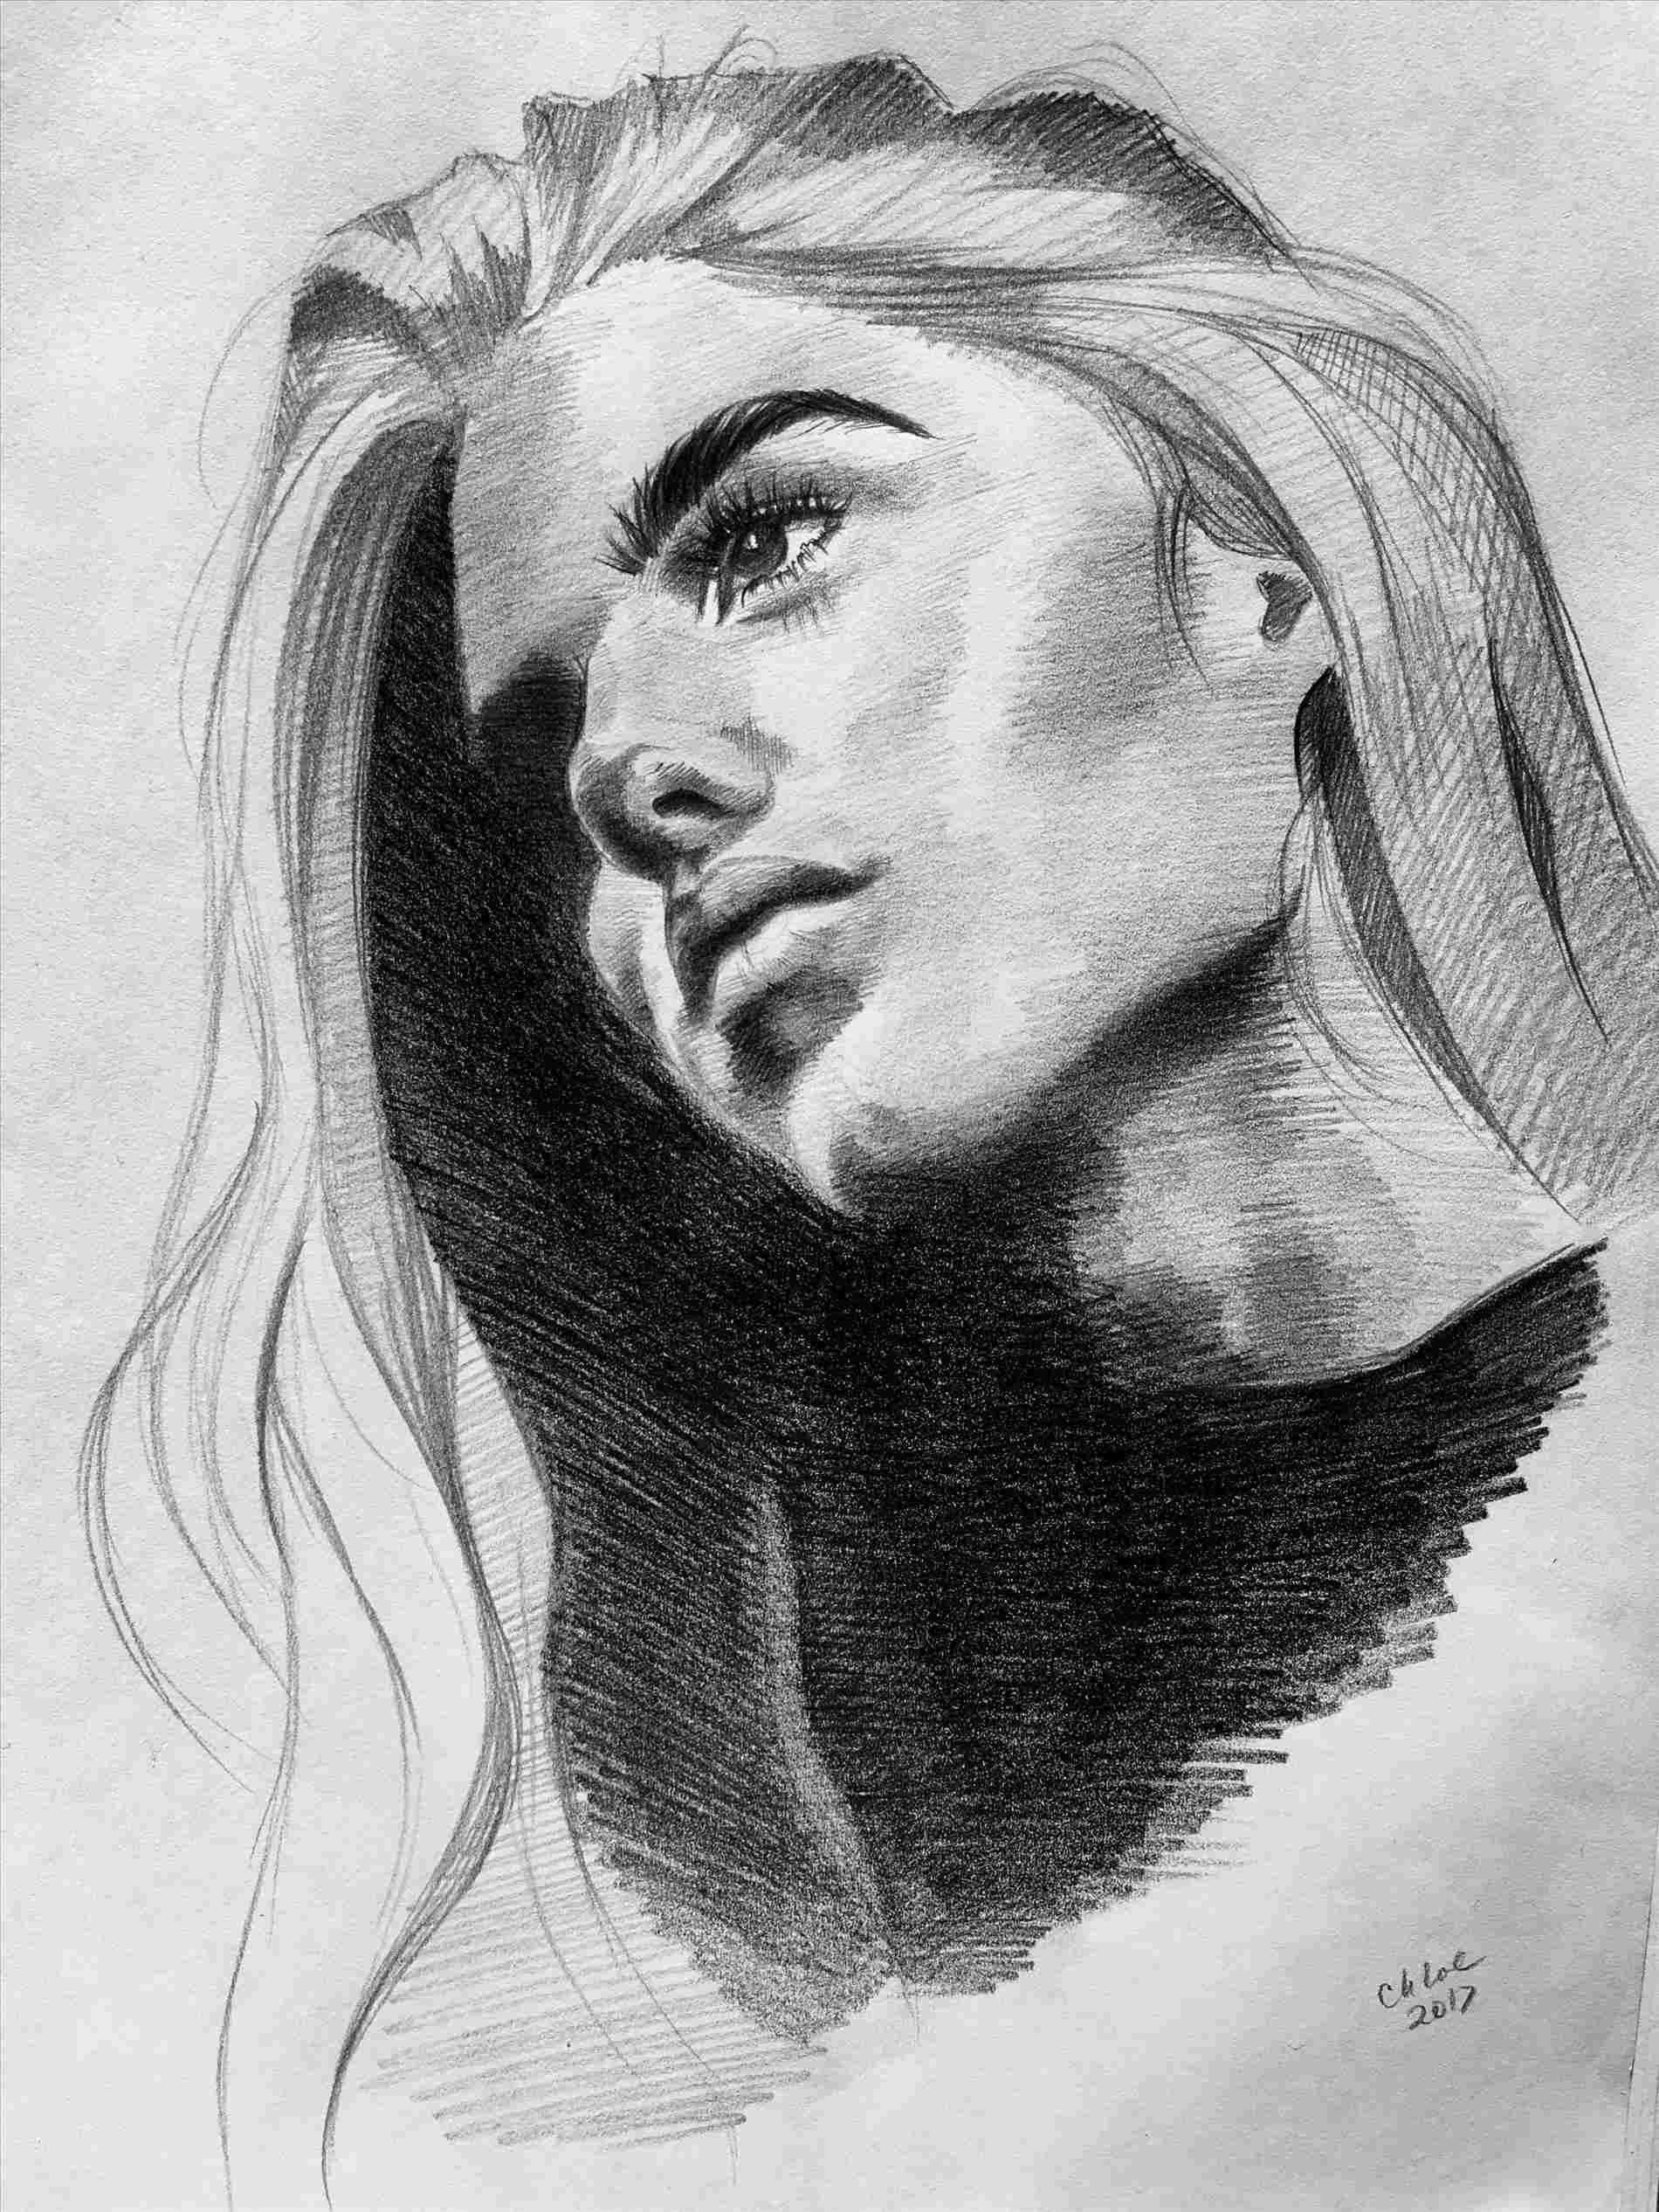 bold-rhcollectioncom-still-easy-charcoal-drawing-ideas-life-s-bold ...